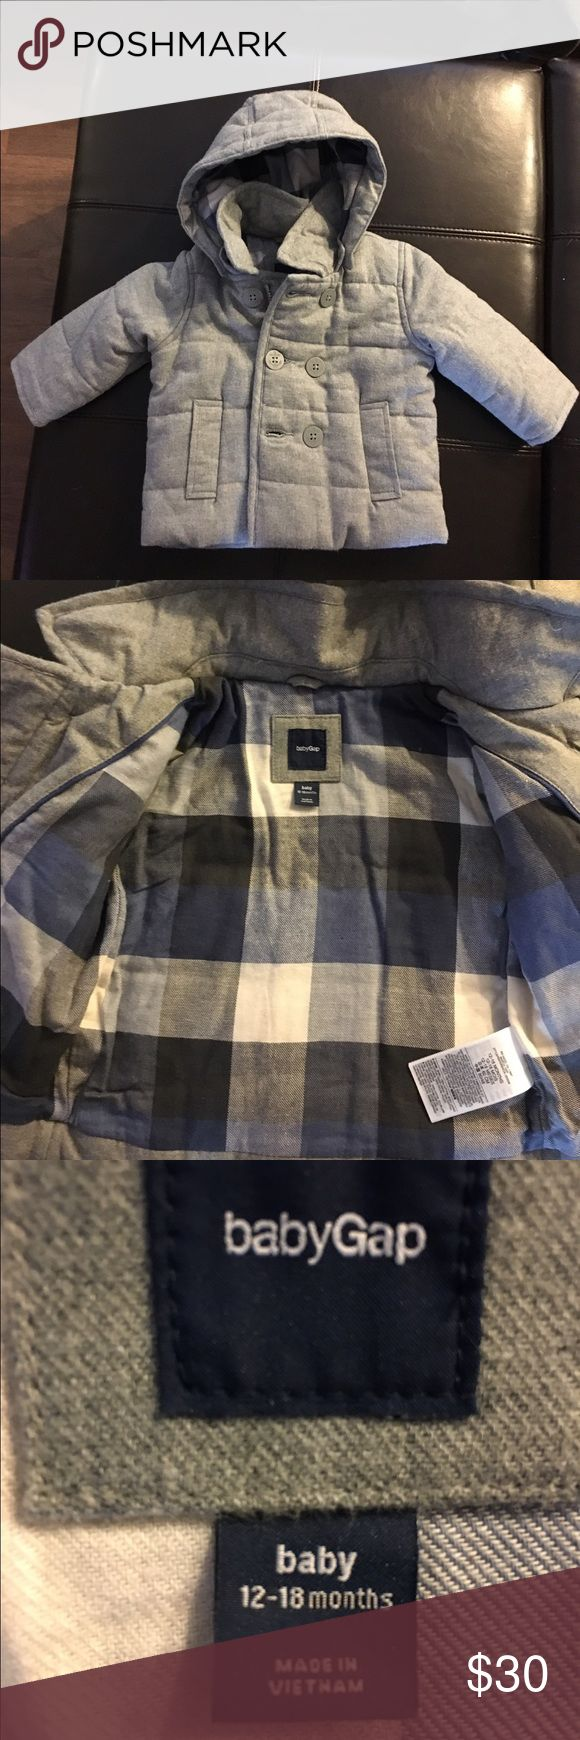 NWOT Baby Gap Jacket Super soft and warm heather grey Baby Gap jacket with grey and blue plaid lining. You can take the hood off. Never worn, bought for my son, and took the tags off, but by the time we needed it, he already grew out of it. My loss, your gain!! 12-18 months but is a I say it fits more like 18 month size. GAP Jackets & Coats Pea Coats